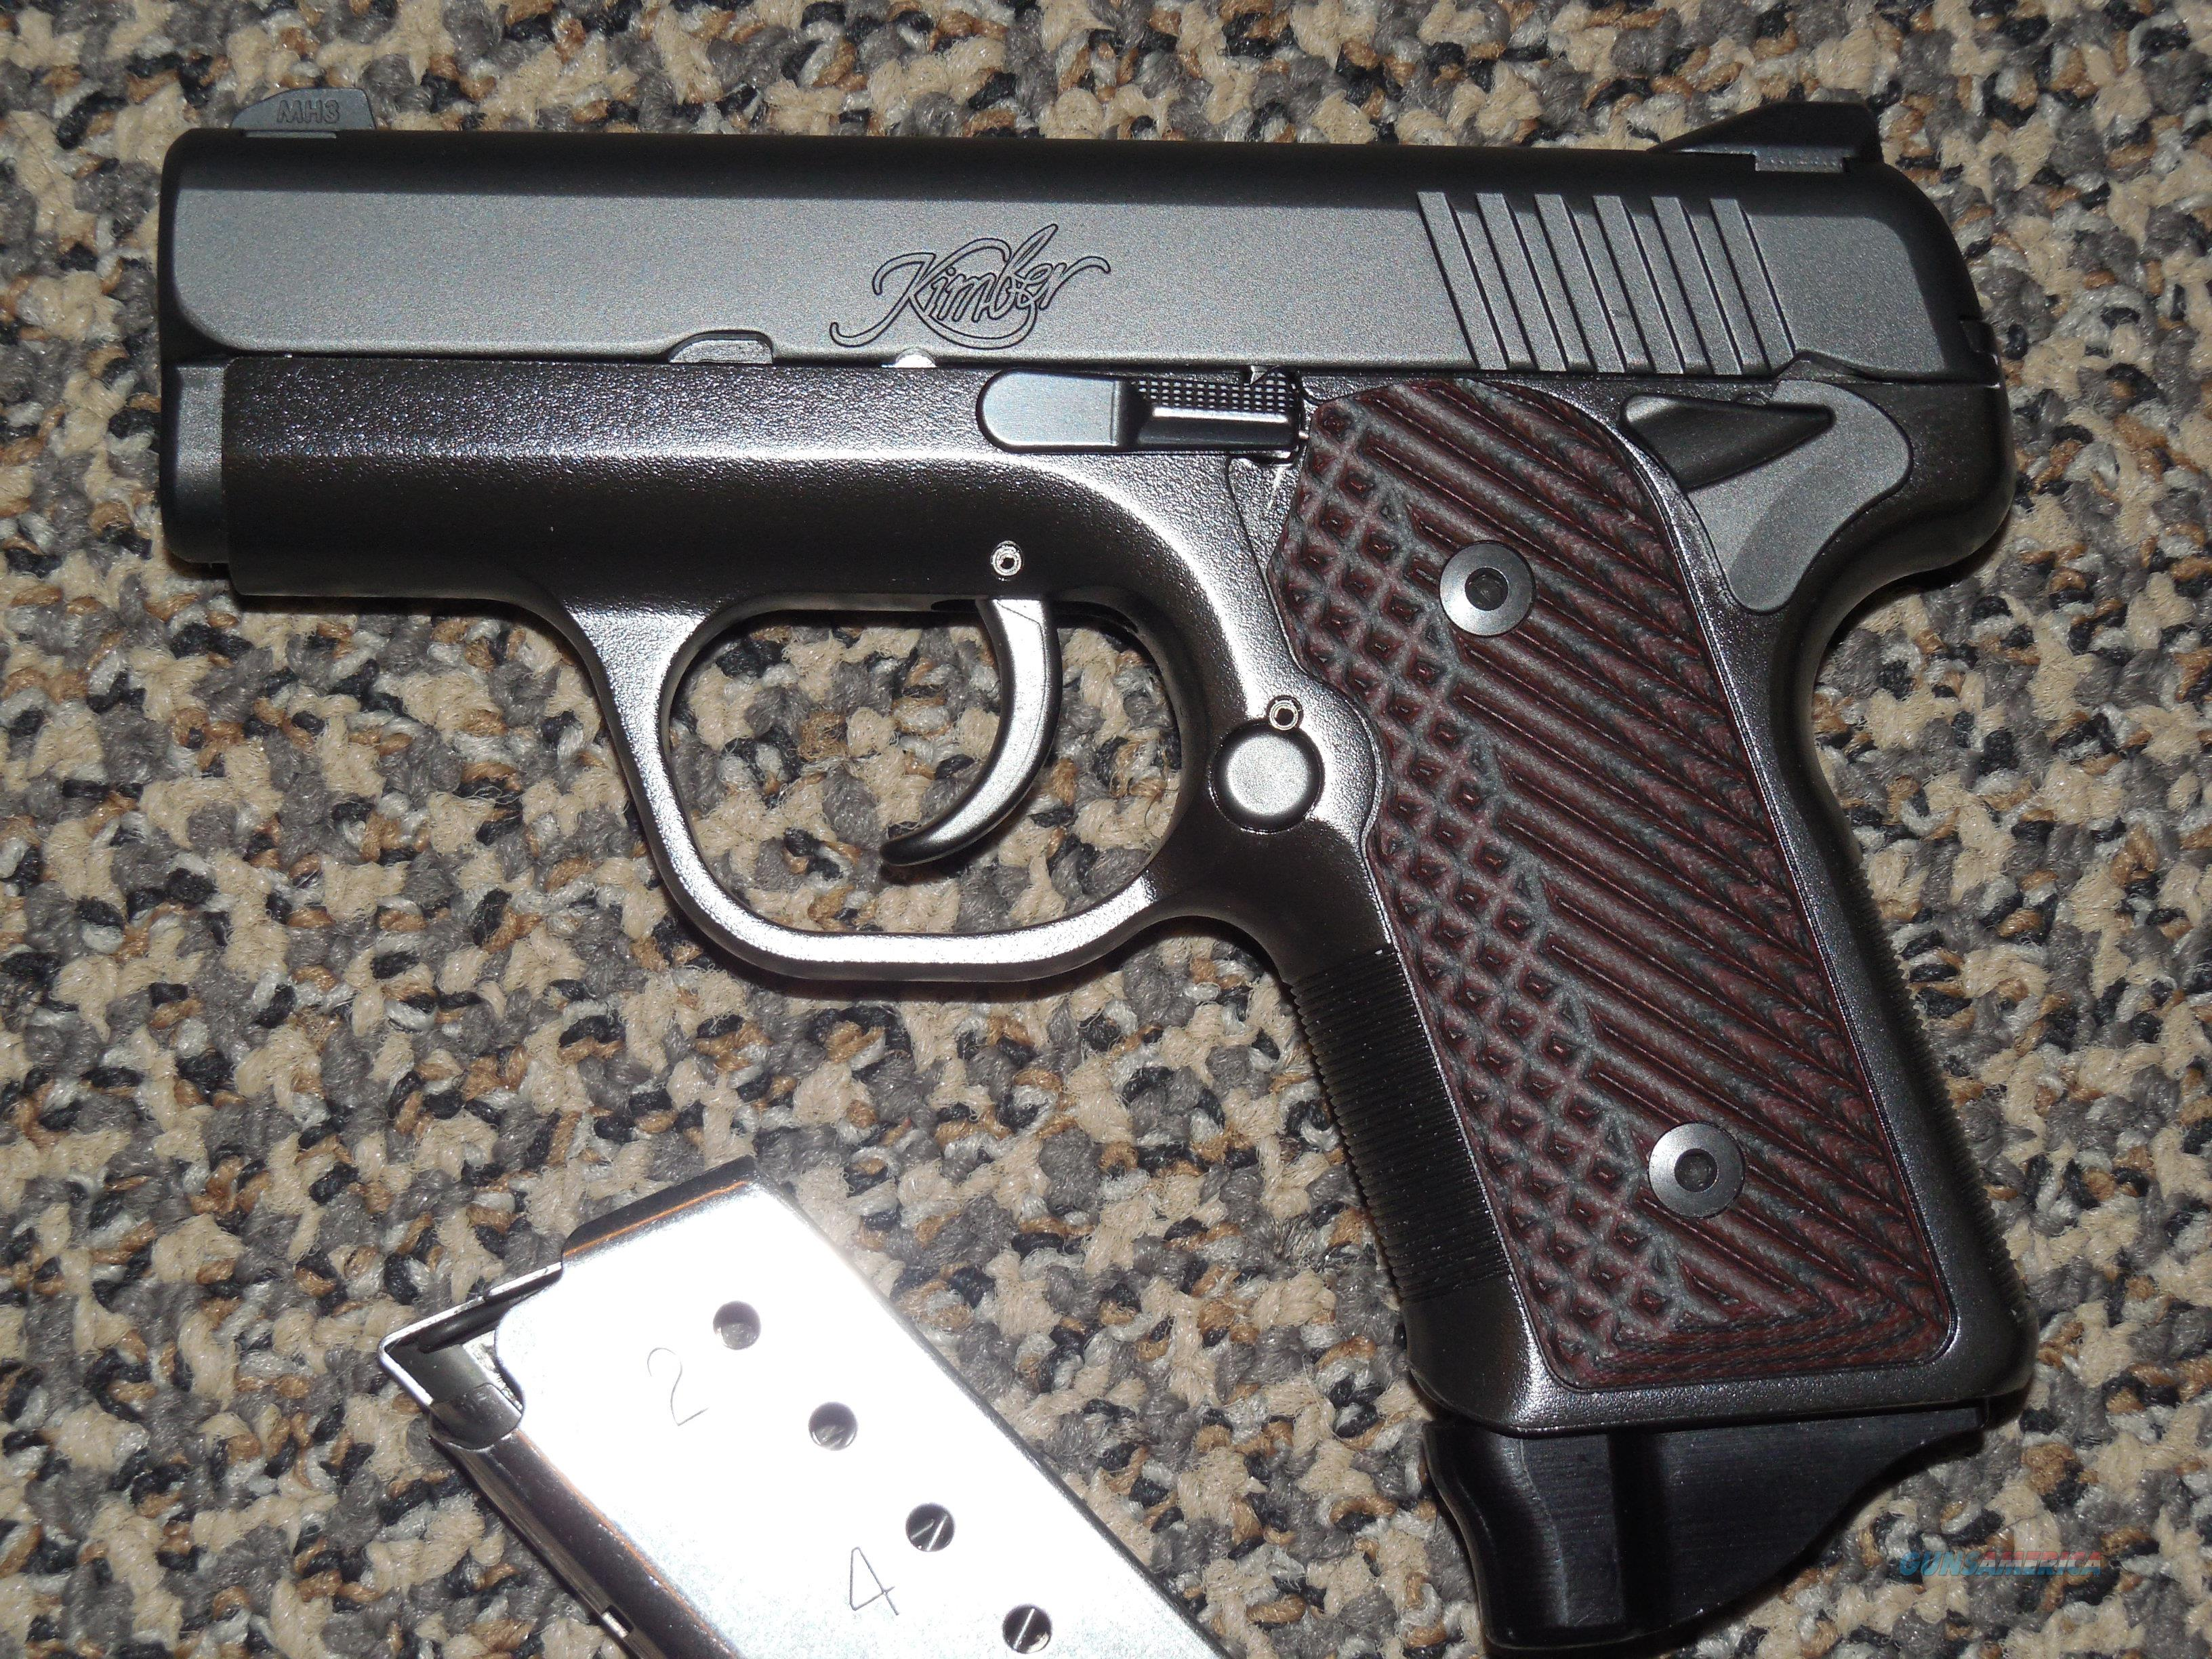 KIMBER SOLO CARRY DC 9 MM WITH NIGHTSIGHTS , VZ GRIPS, AND TWO MAGS